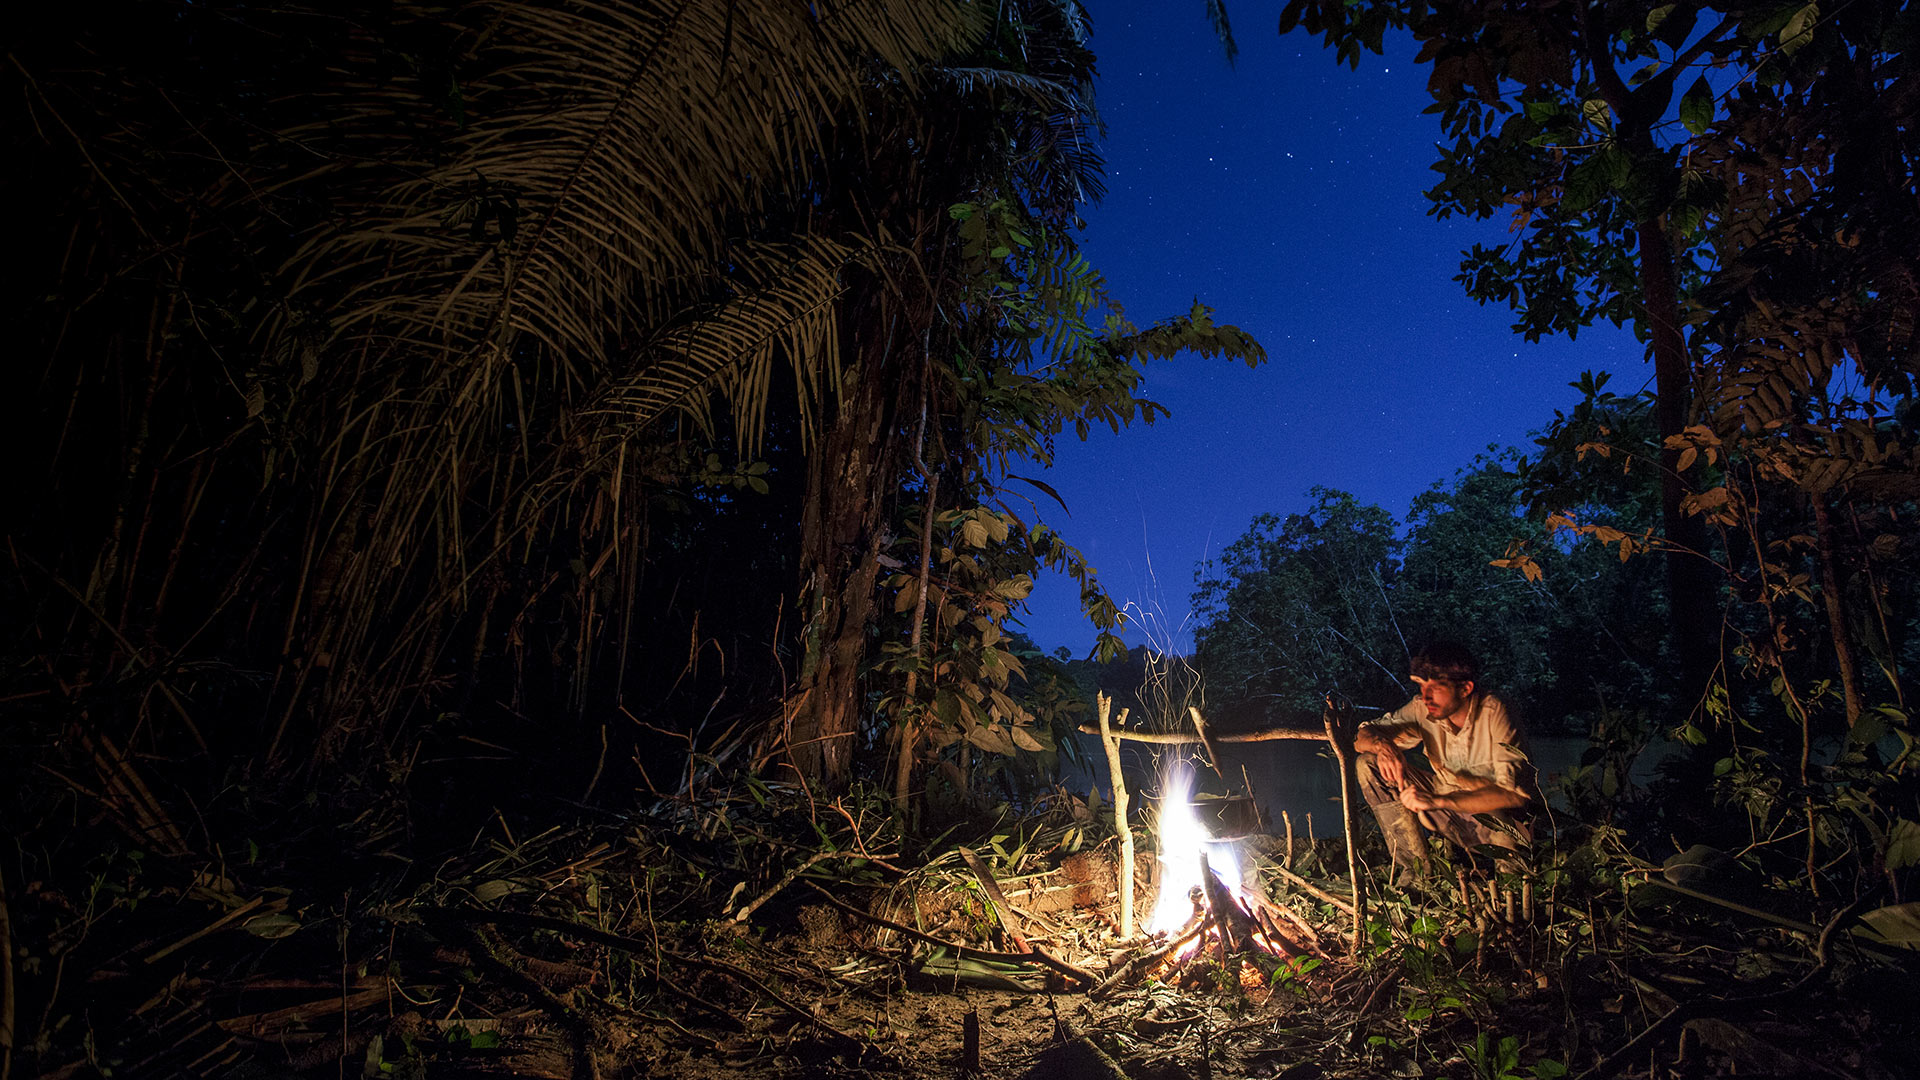 Still from Dugout with man sitting around a campfire in a jungle